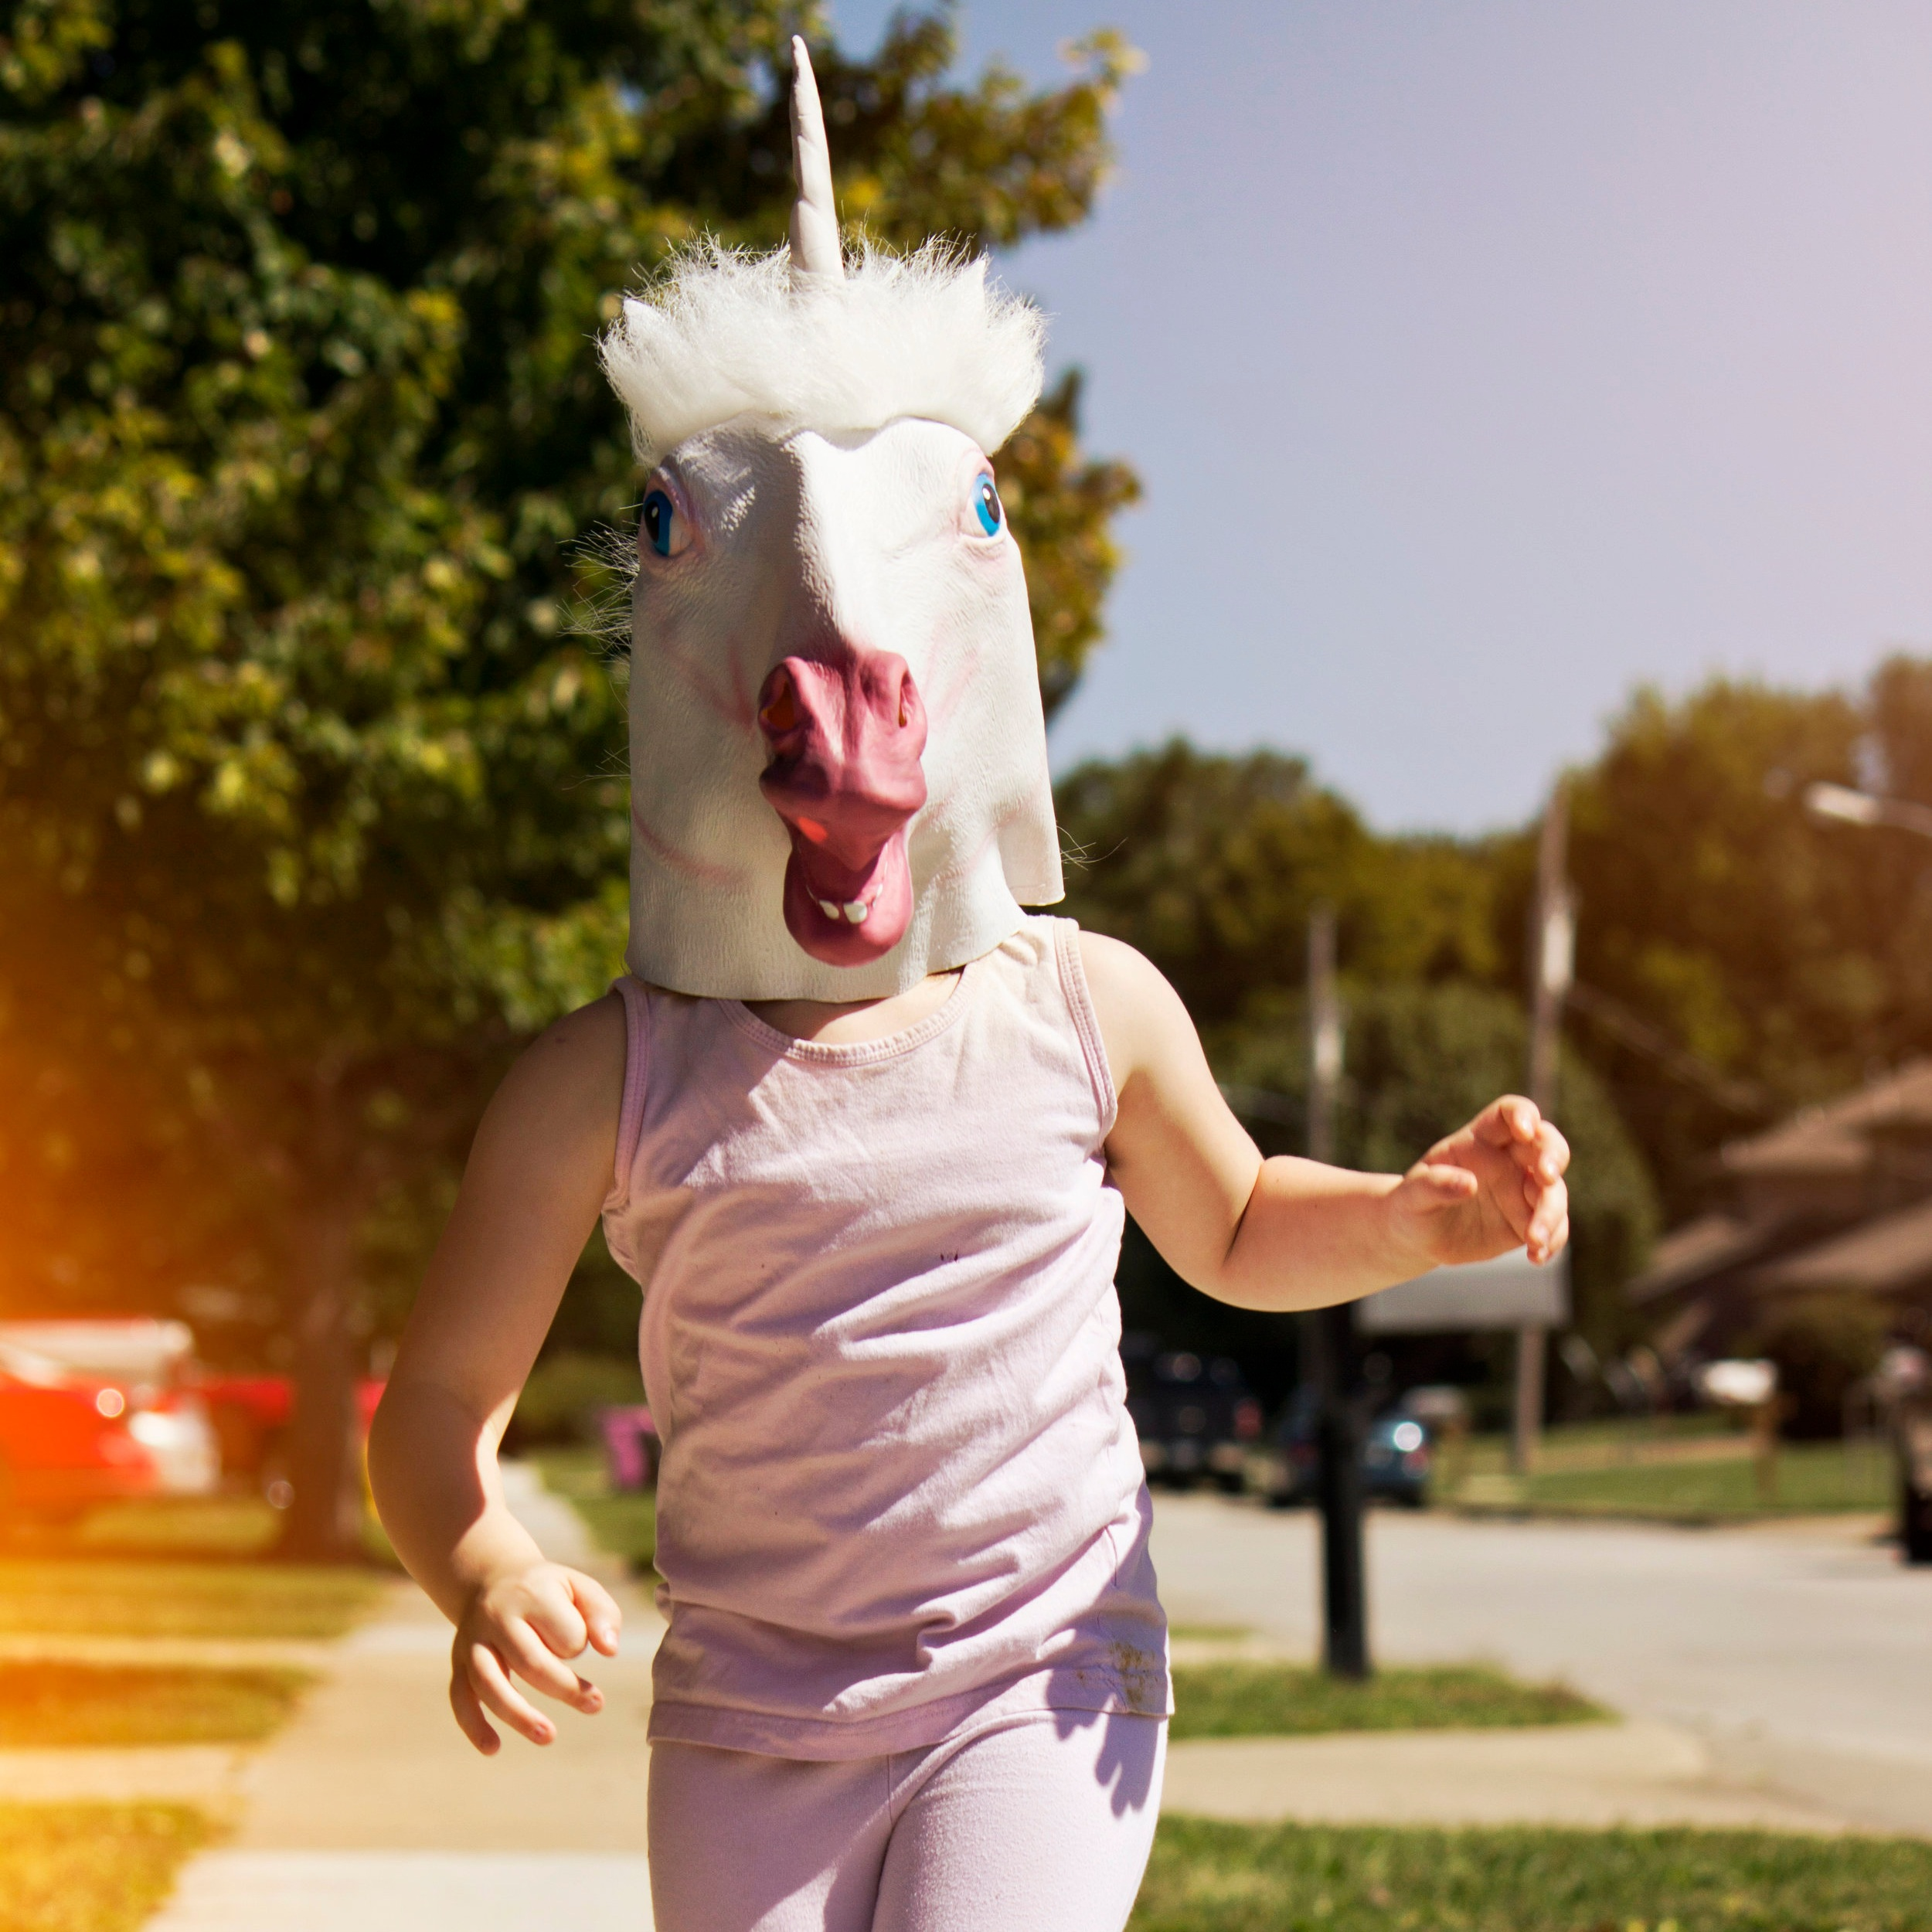 """There is no Sales Unicorn - Time and again we hear firms say they """"just need a salesperson"""". There is no unicorn that can do all the necessary parts of running a true sales system alone. Sales involves marketing, prospecting, deal management, leadership, system creation and many other things to be successful. 17% of all full times jobs in the US are sales jobs. Thats why we offer all the parts you need at the level and budget you need them."""